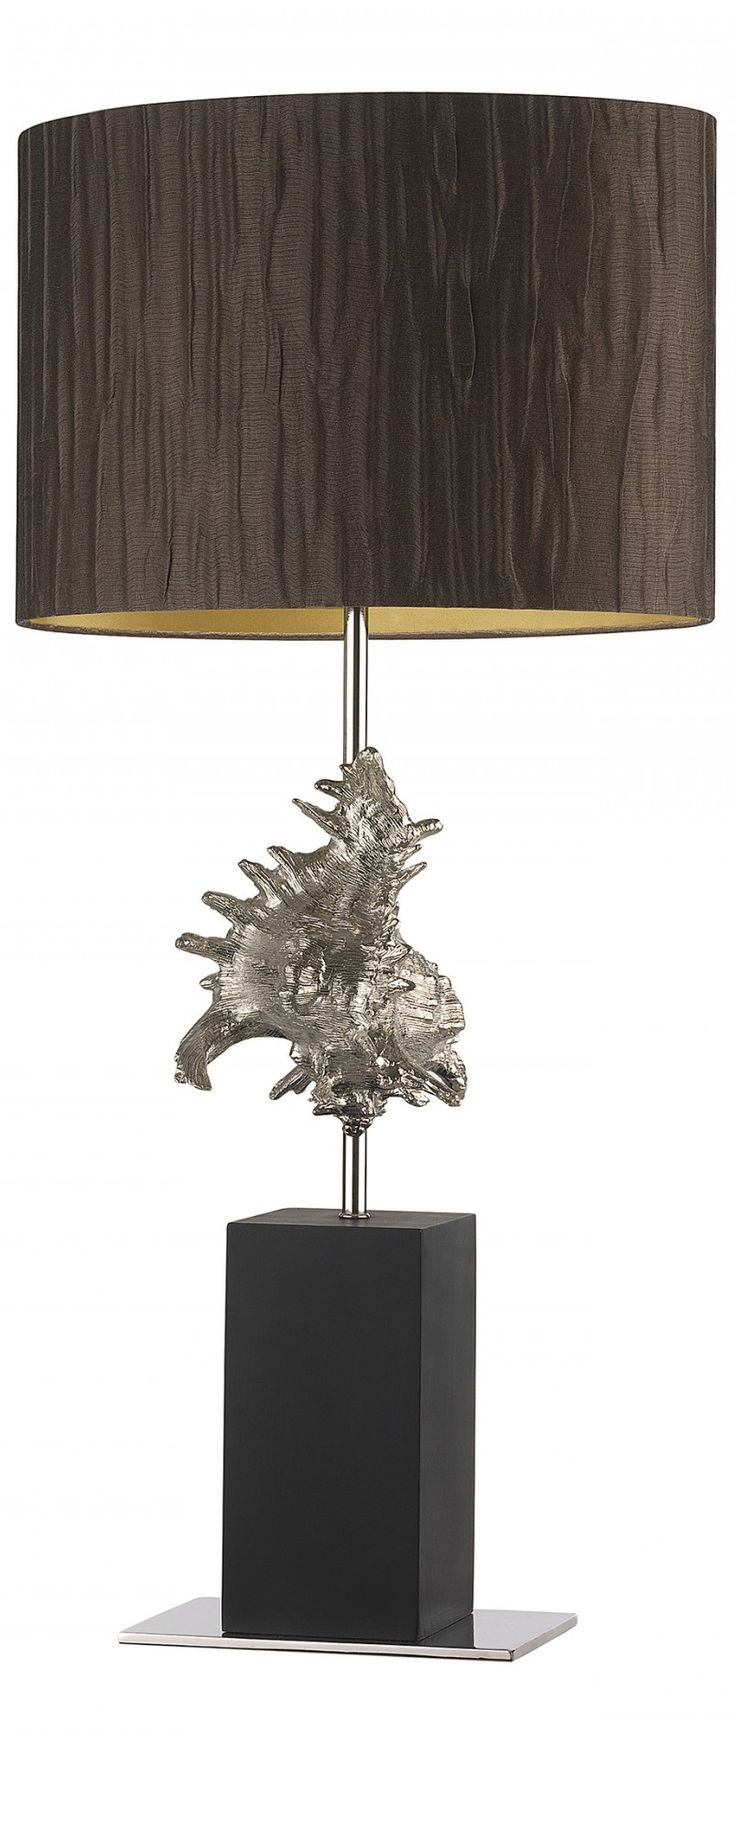 Wooden table lamps for living room -  Silver Silver Table Lamp Table Lamps Modern Table Lamps Contemporary Table Living Room